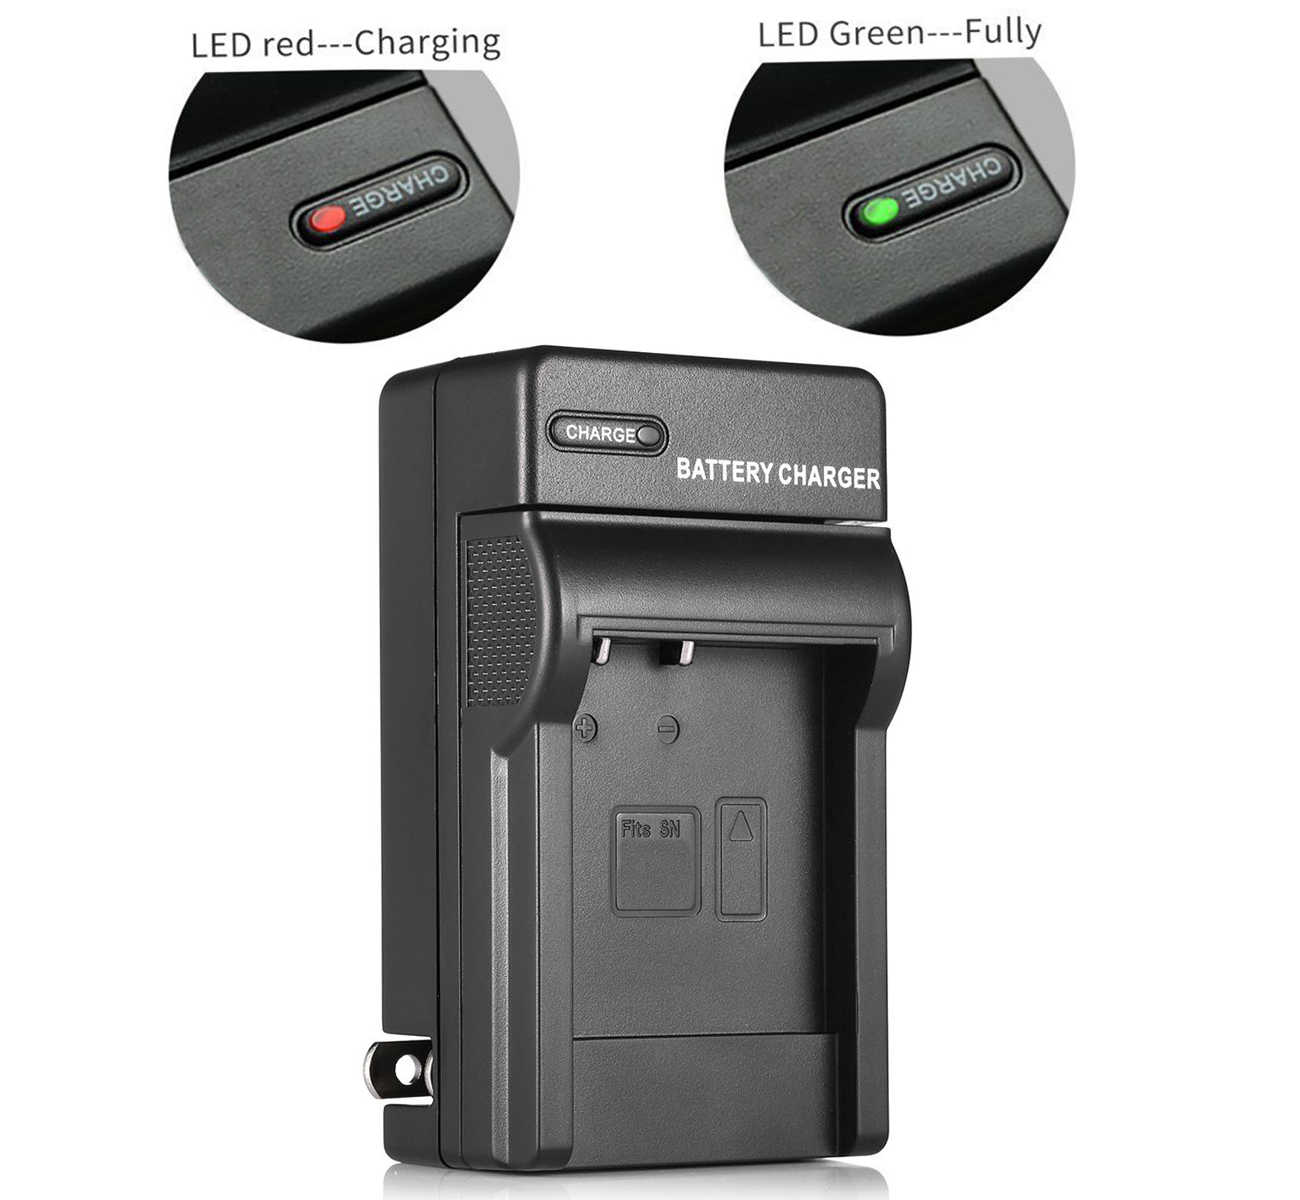 Battery Charger for JVC Everio GZ-MG148 GZ-MG177 Camcorder GZ-MG157